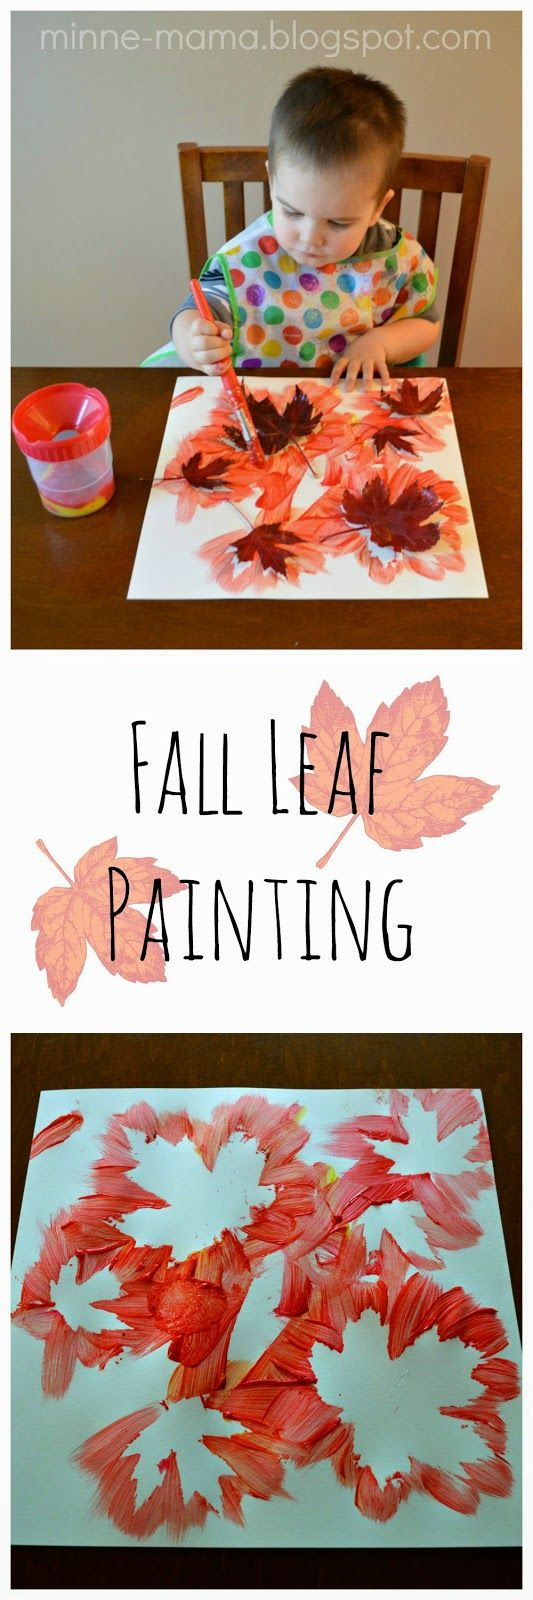 girls jewelry sets Fall Leaf Painting